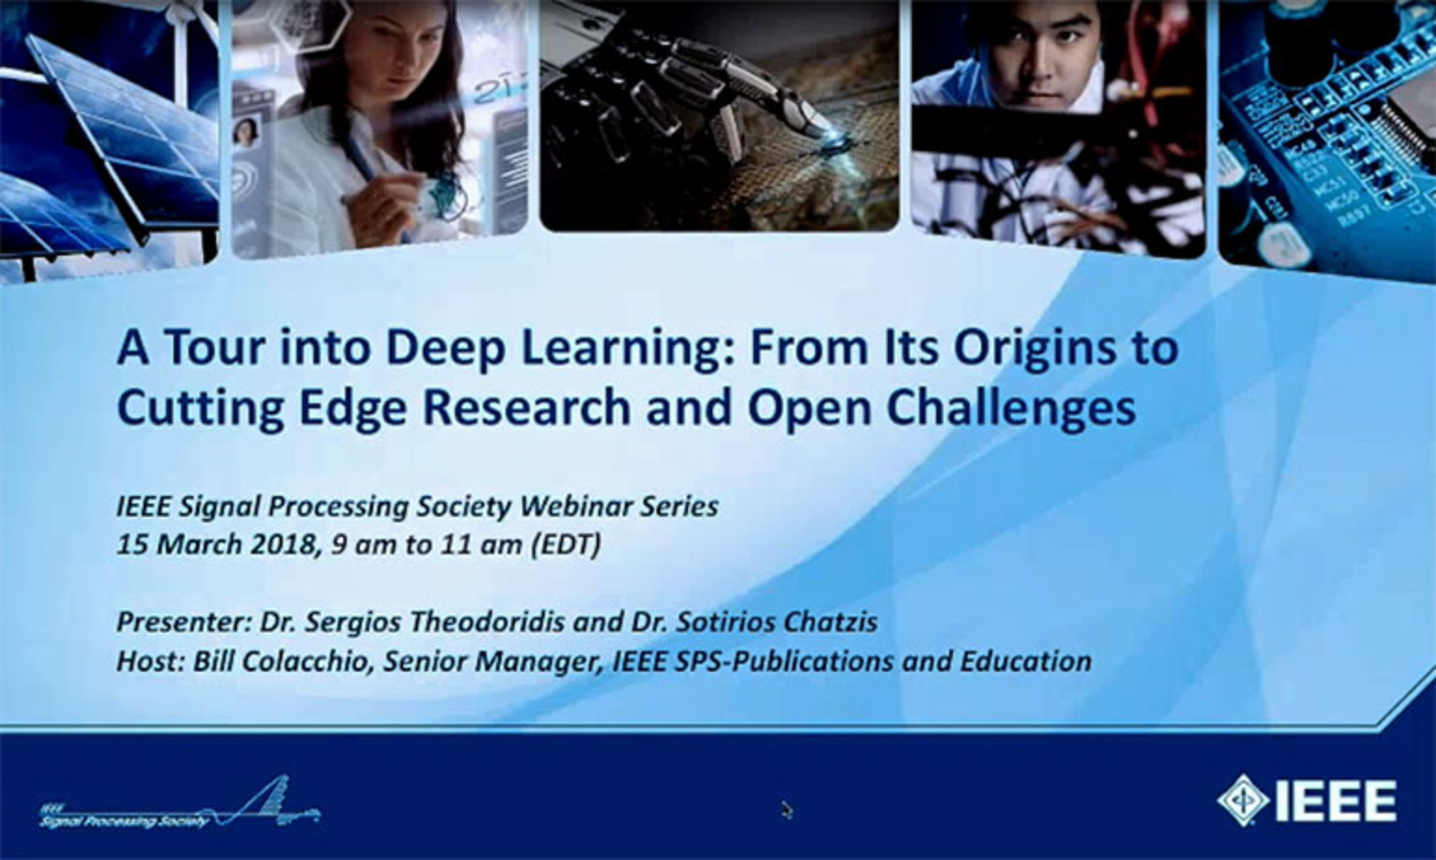 SPS Webinar-A Tour into Deep Learning: From its Origins to Cutting Edge Research and Open Challenges. Sergios Theodoridis